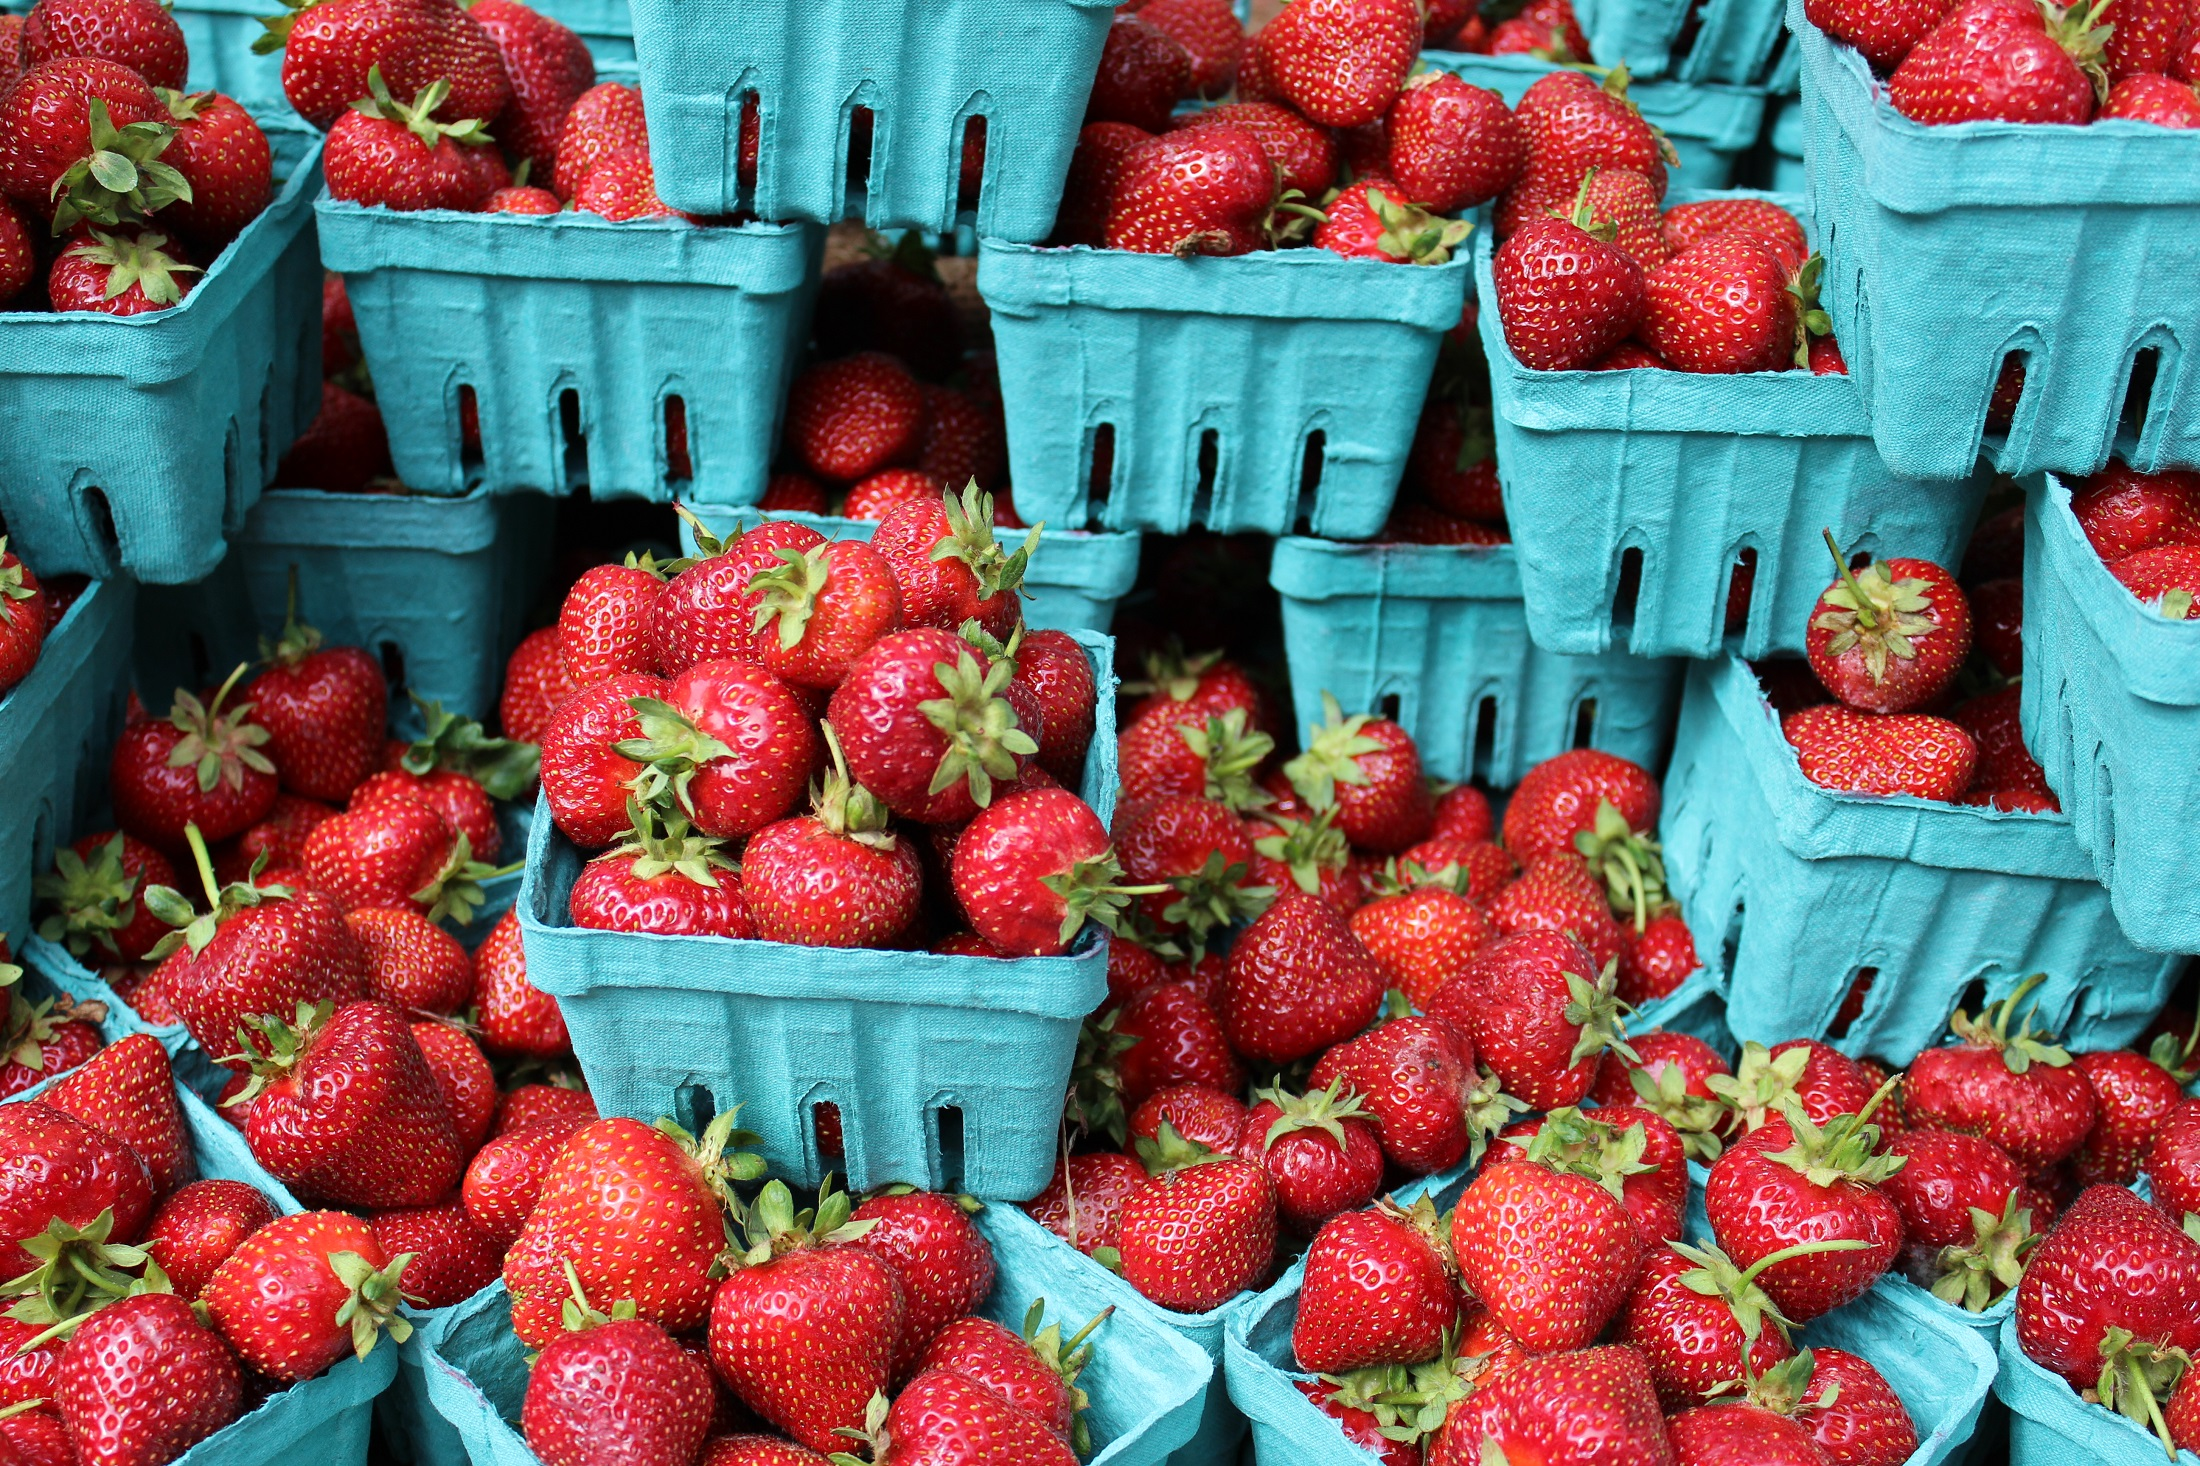 Strawberries in punnets (PA)